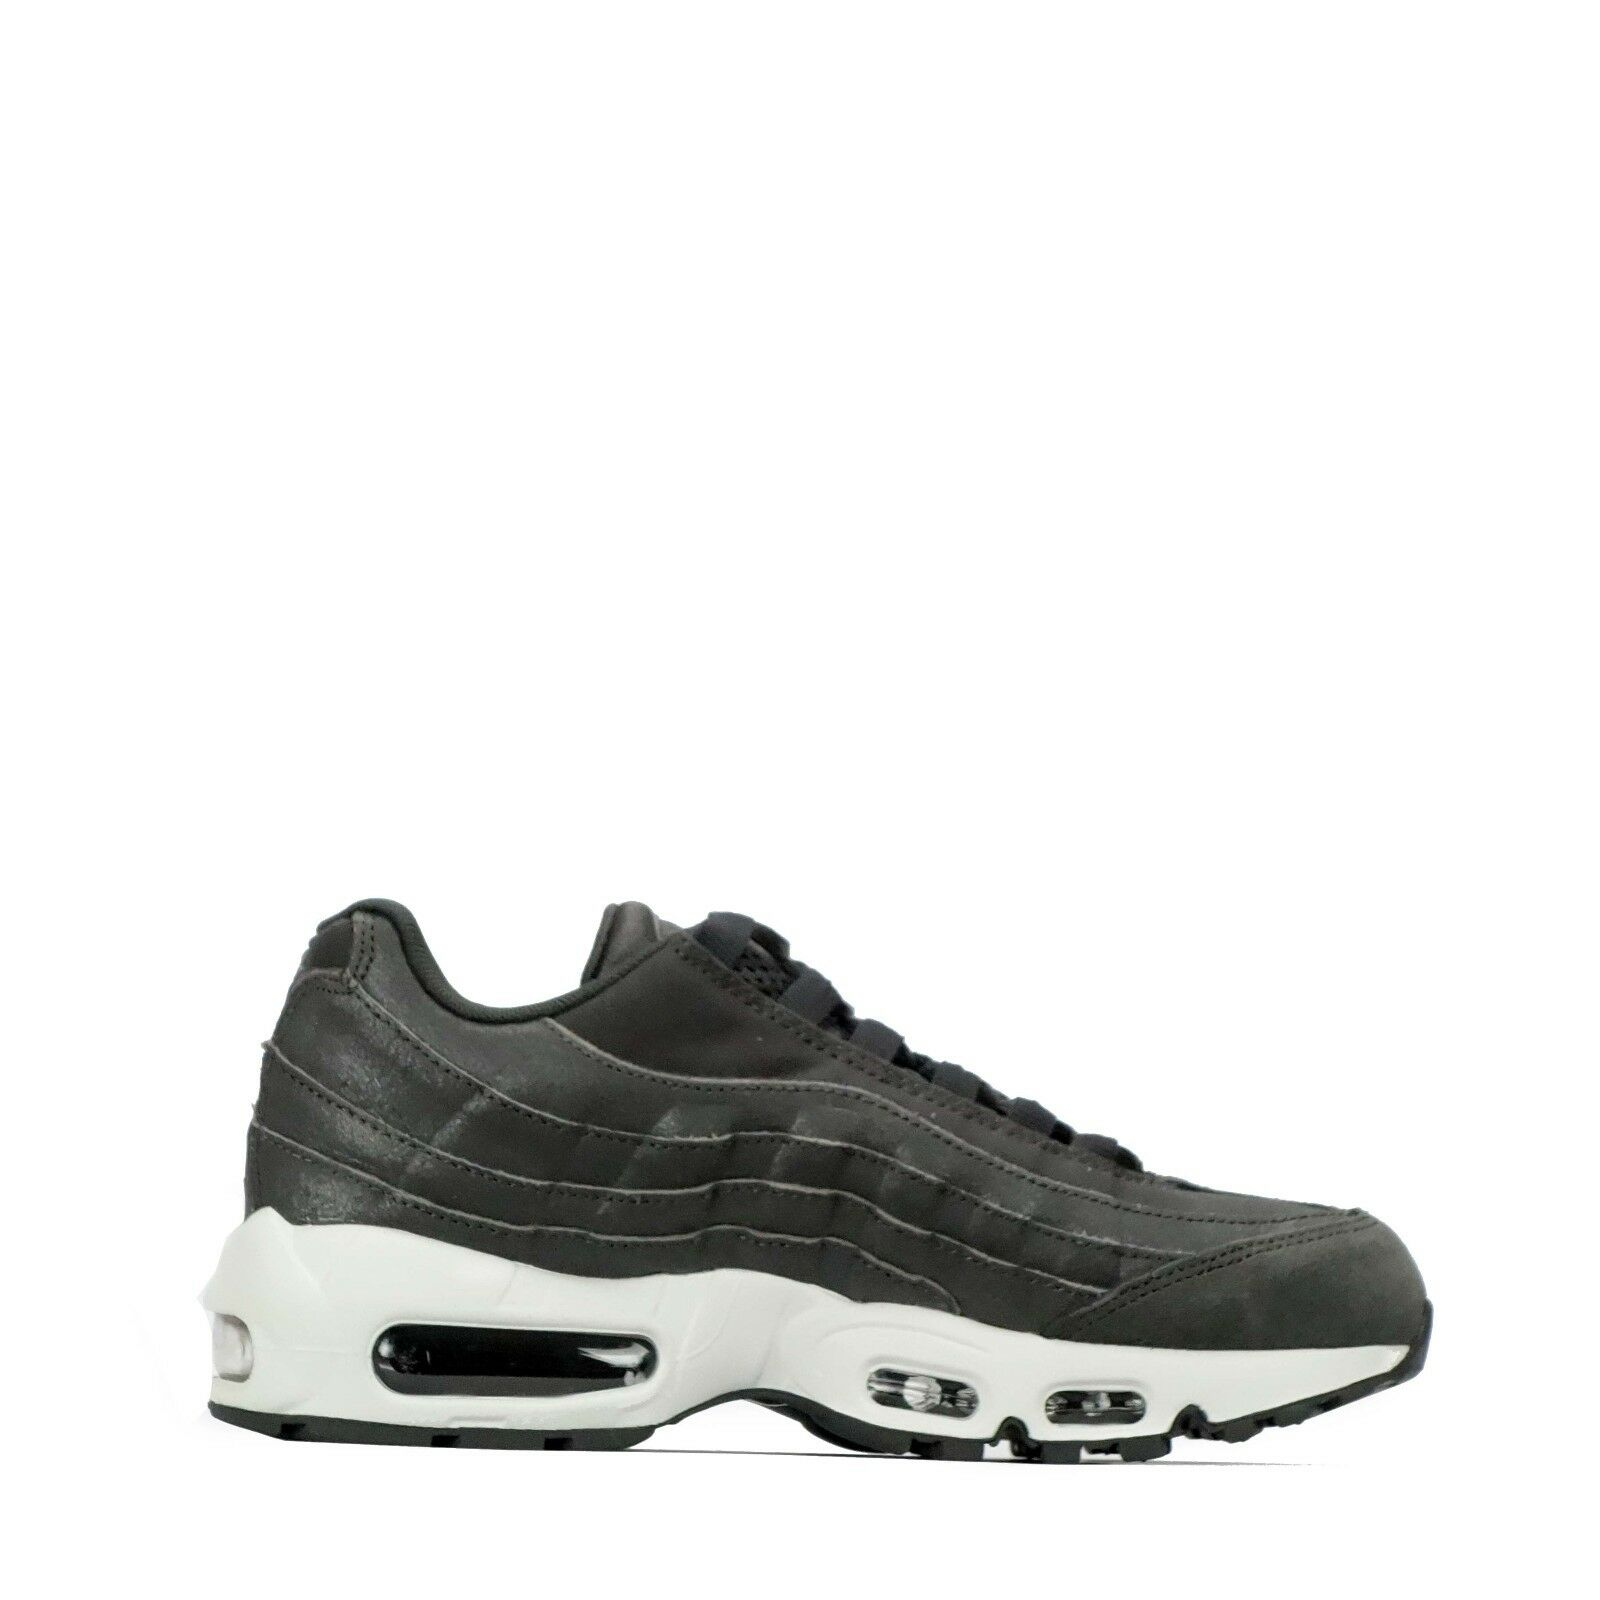 NIKE AIR MAX 95 Premium Damen Schuhe in Midnight Nebel Nebel Nebel  50a2e0